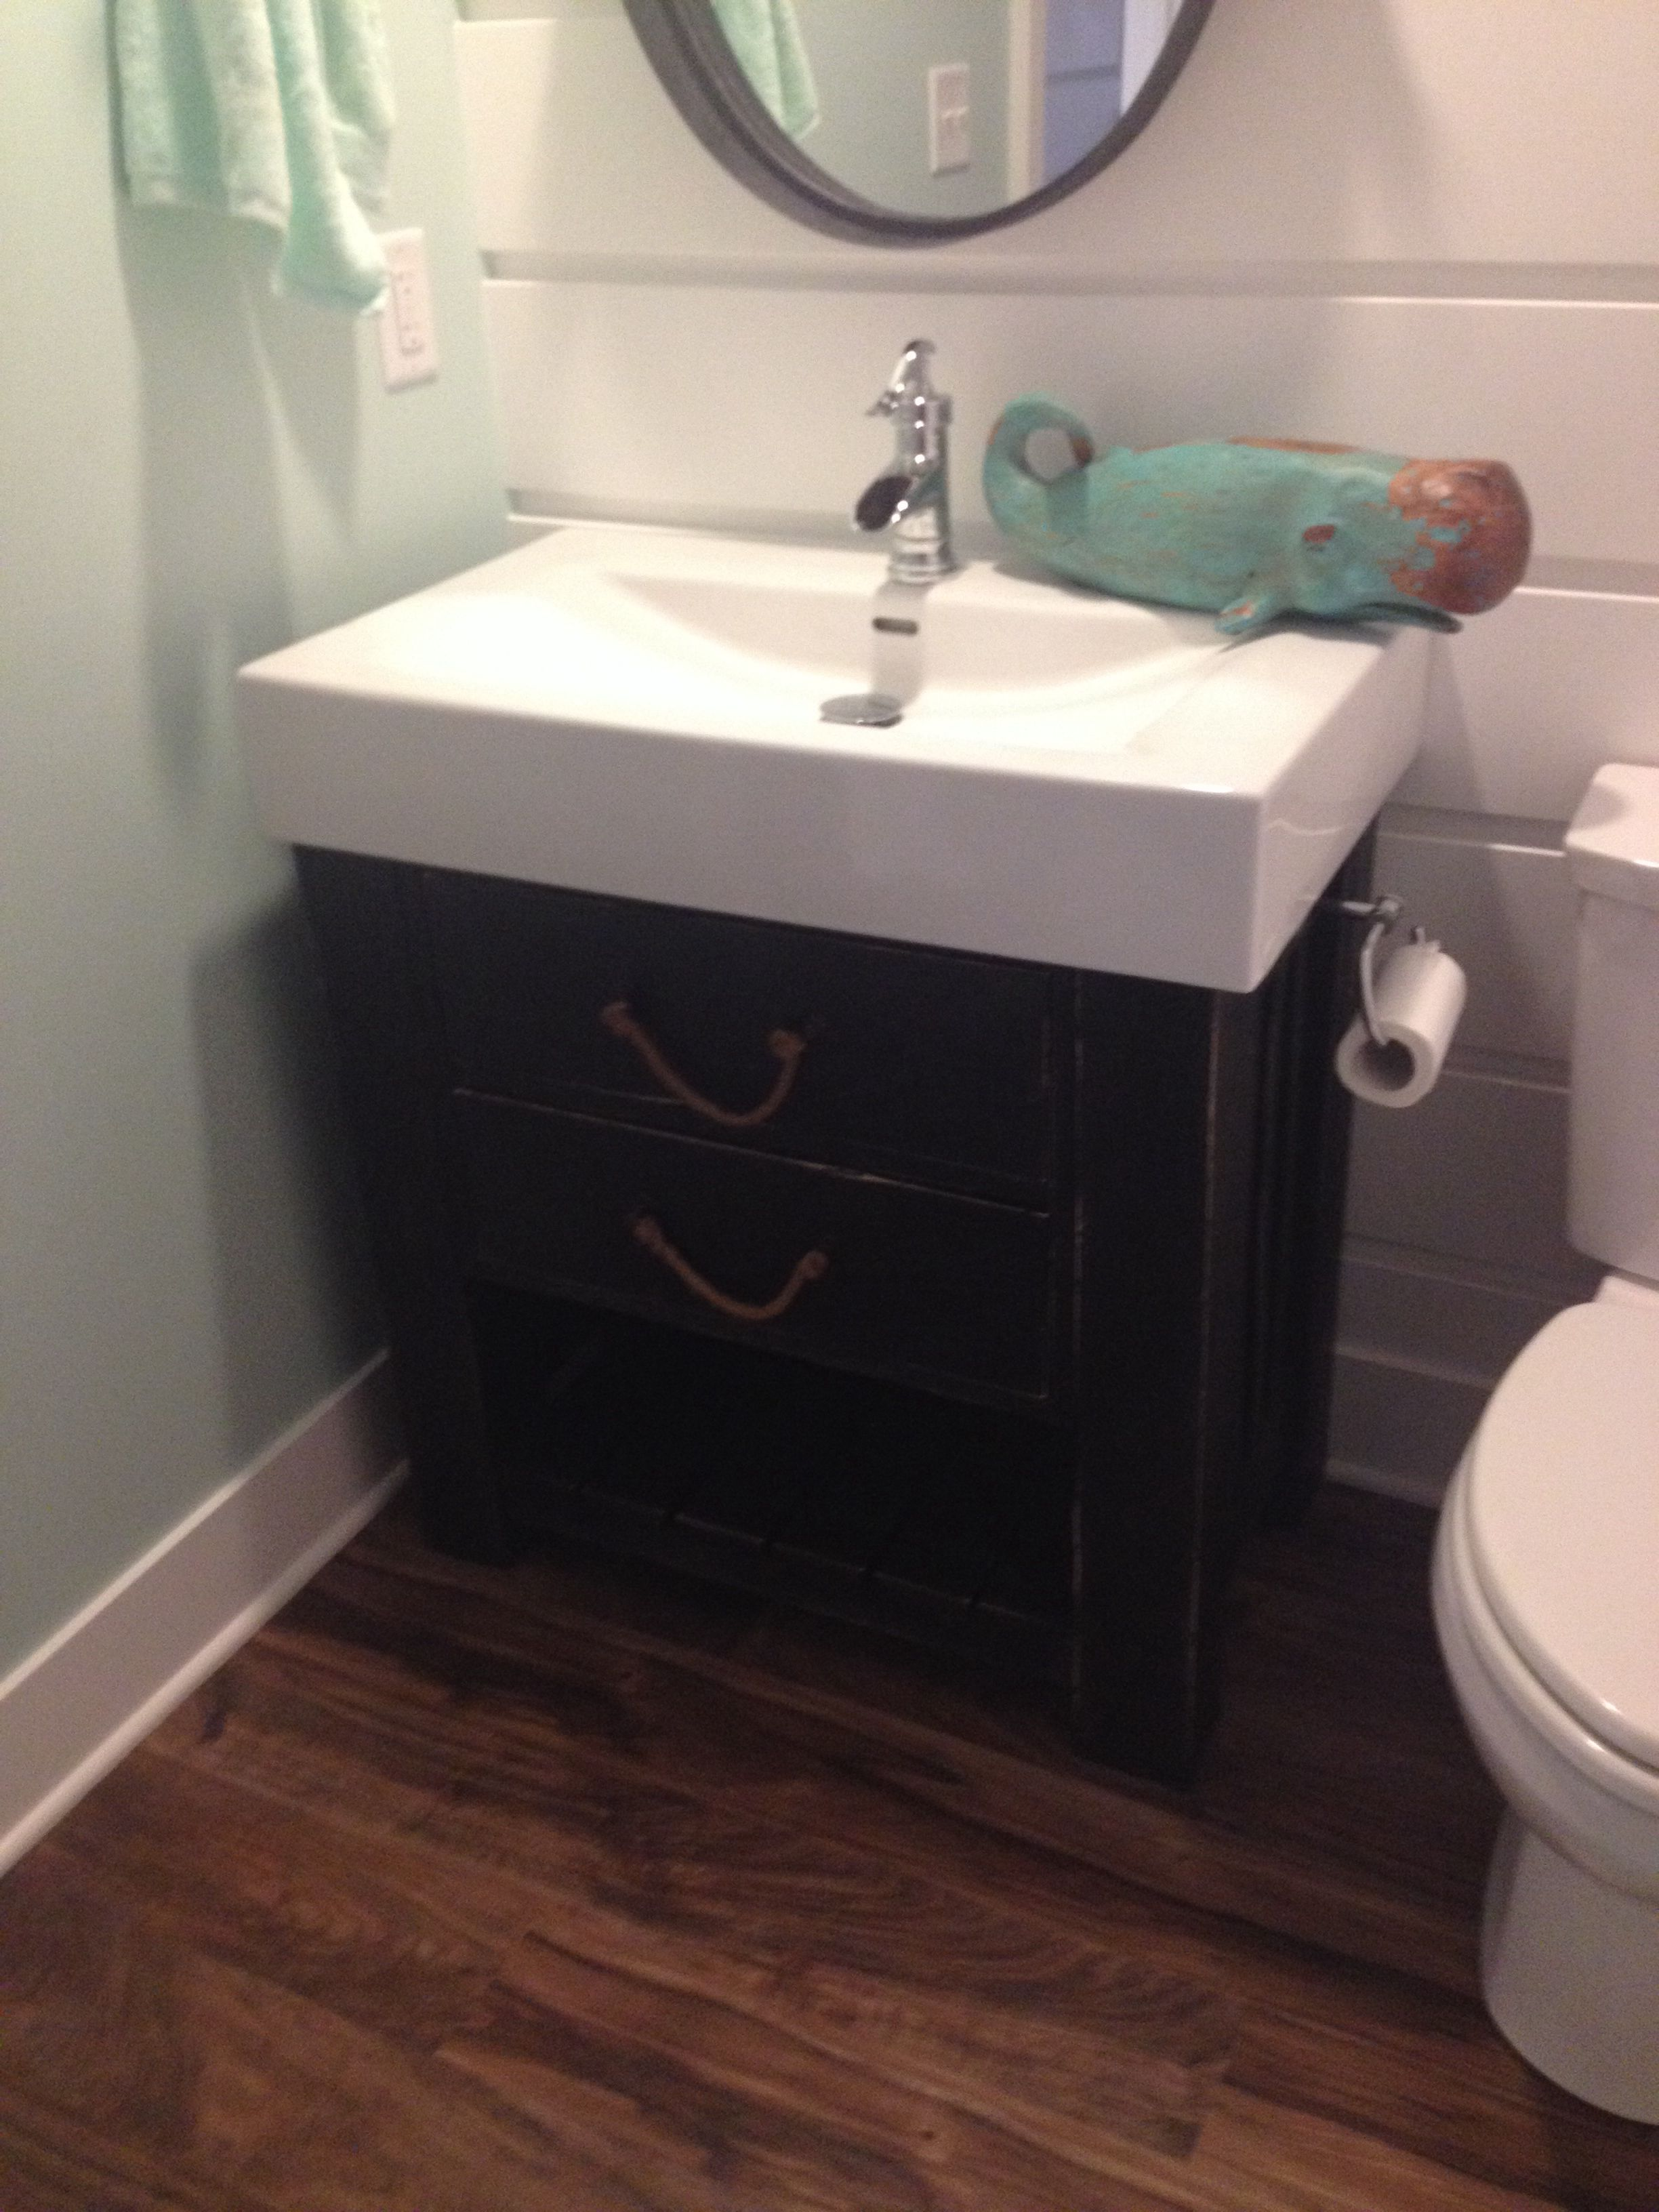 Rough sawn oak weather black vanity with anthropologie rope drawer ...